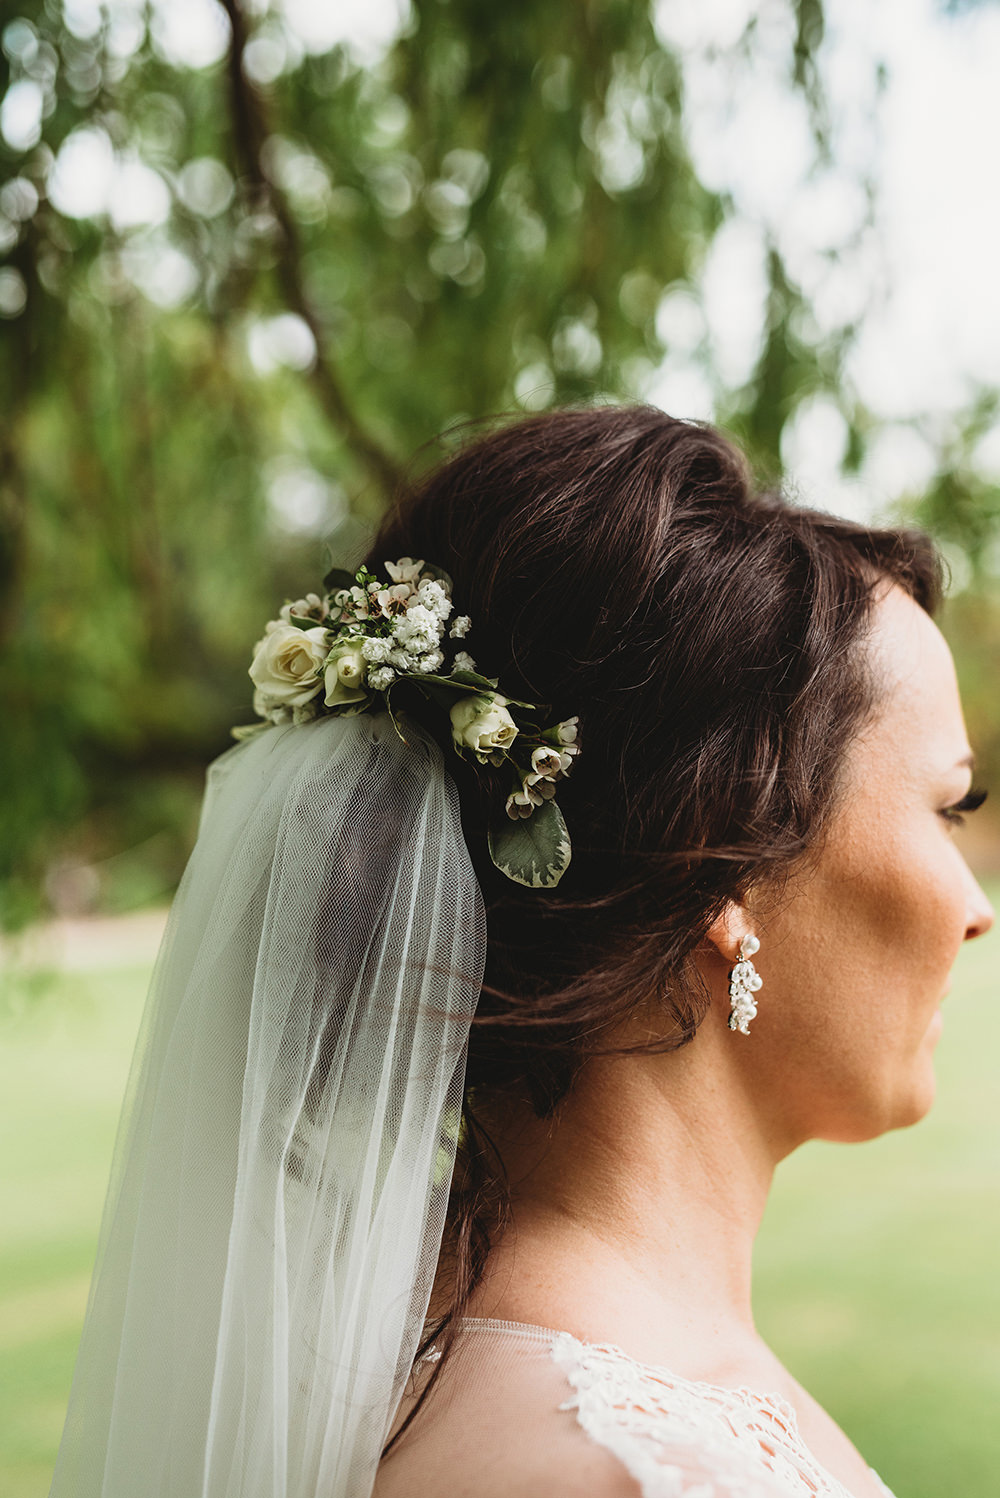 Bride Bridal Hair Style Up Do Flowers Veil Whinstone View Wedding Emma Adamson Photography